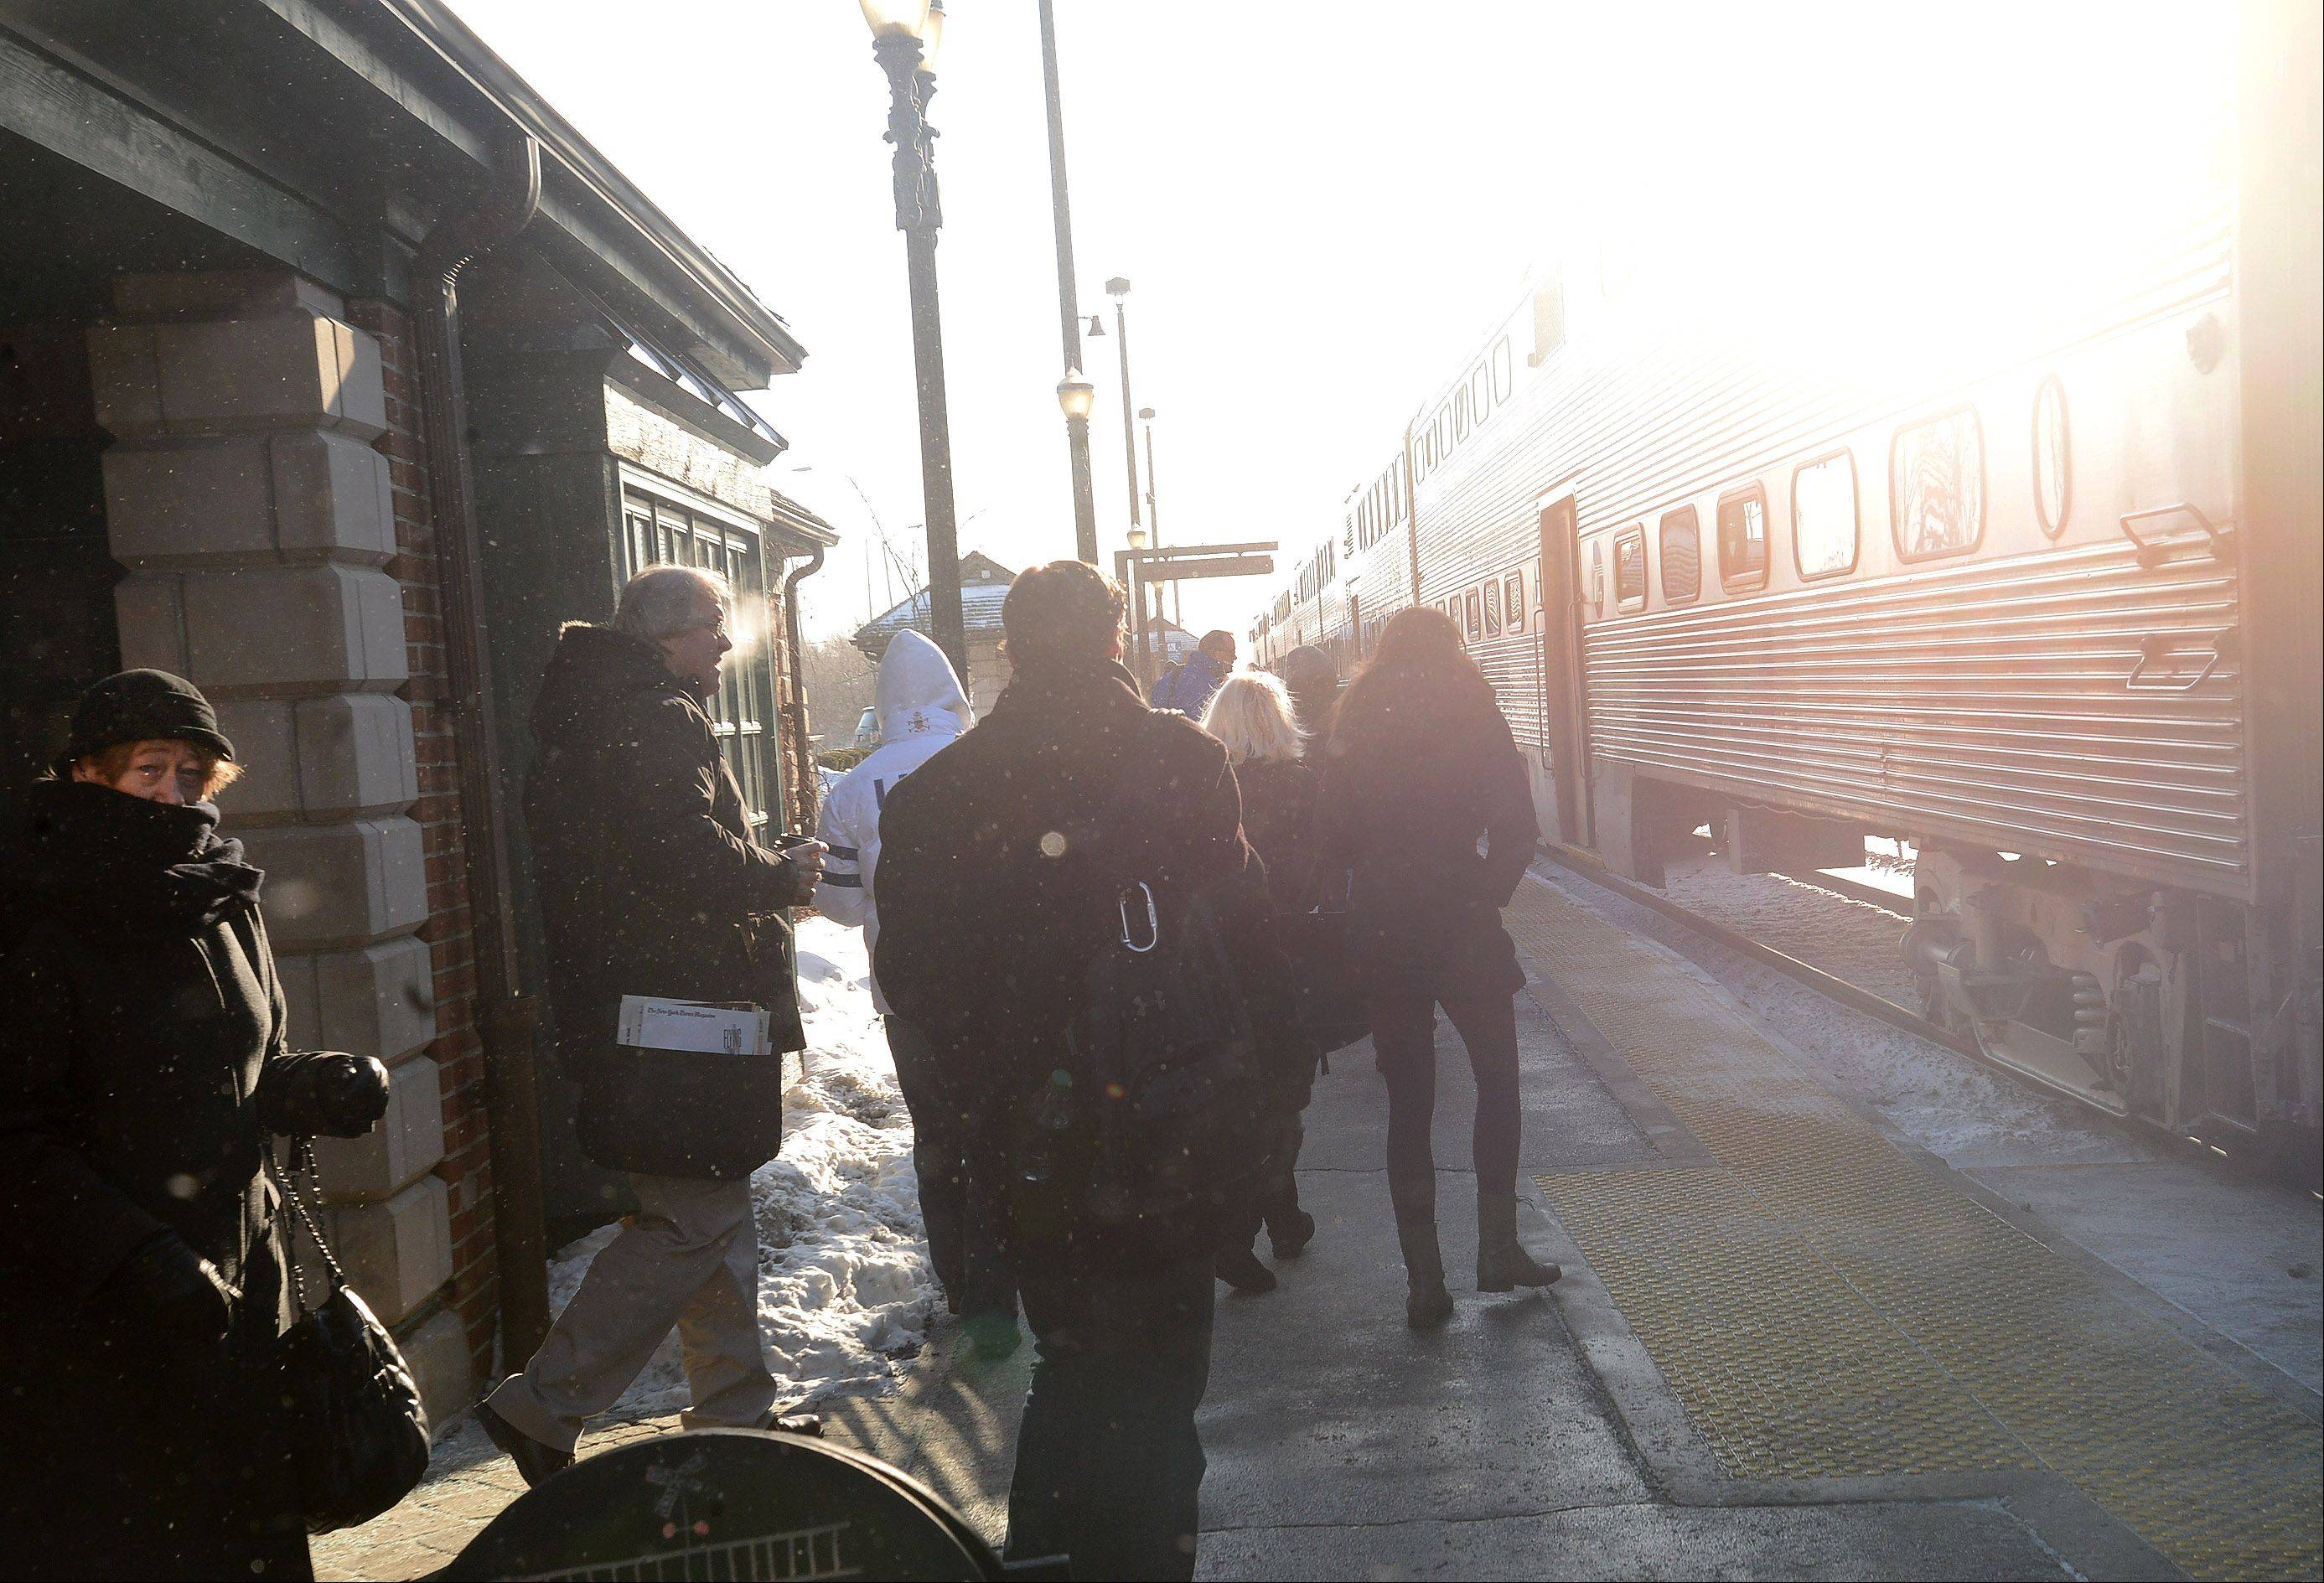 Frozen commuters board the Metra train at the Barrington train station.